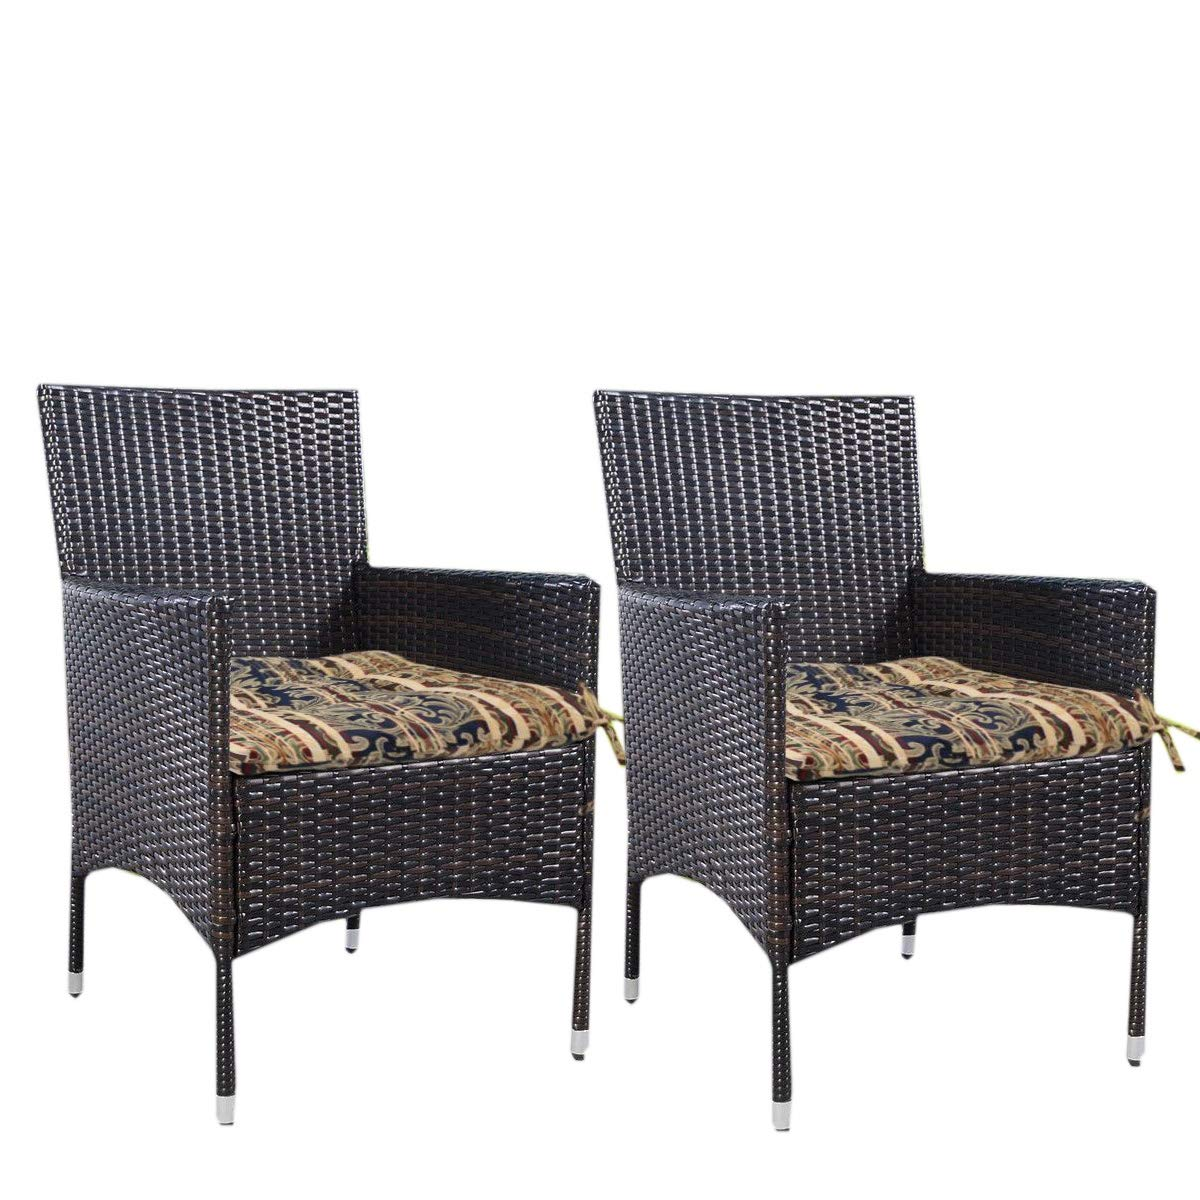 Prettyshop4246 Set of 2 Pcs Indoor Outdoor Wicker Warm Cushion Seat Pad Poolside Home Garden Patio Backyard Balcony Linen Fabric Made in USA Product Soap Maintain Easy Clean Brown Tone Color by Prettyshop4246 (Image #5)